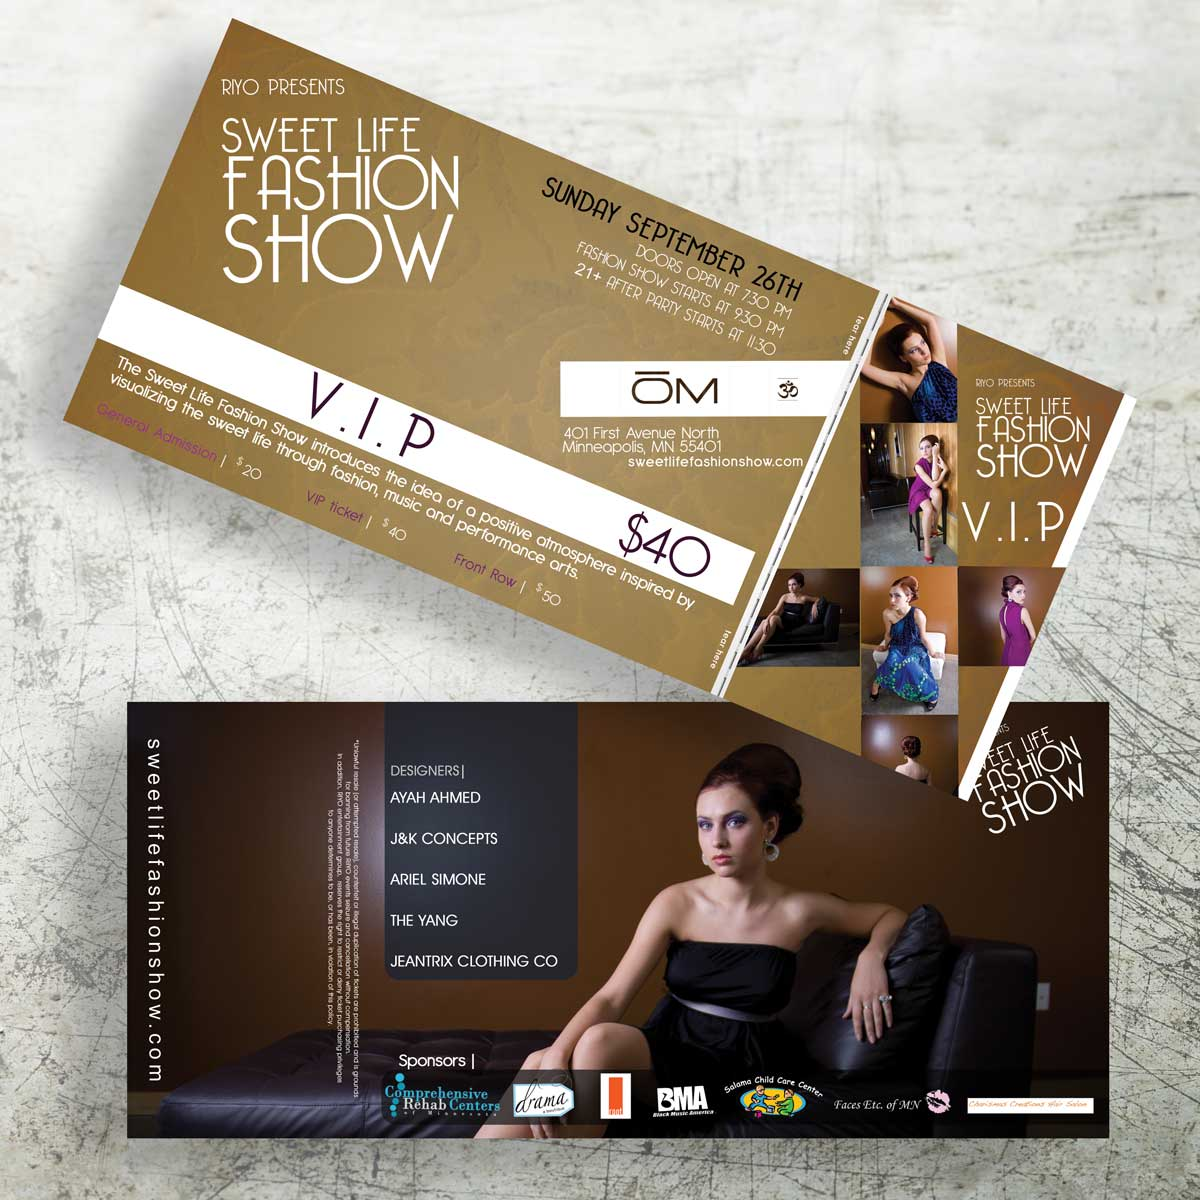 Sweet Life Fashion Show VIP Ticket Design